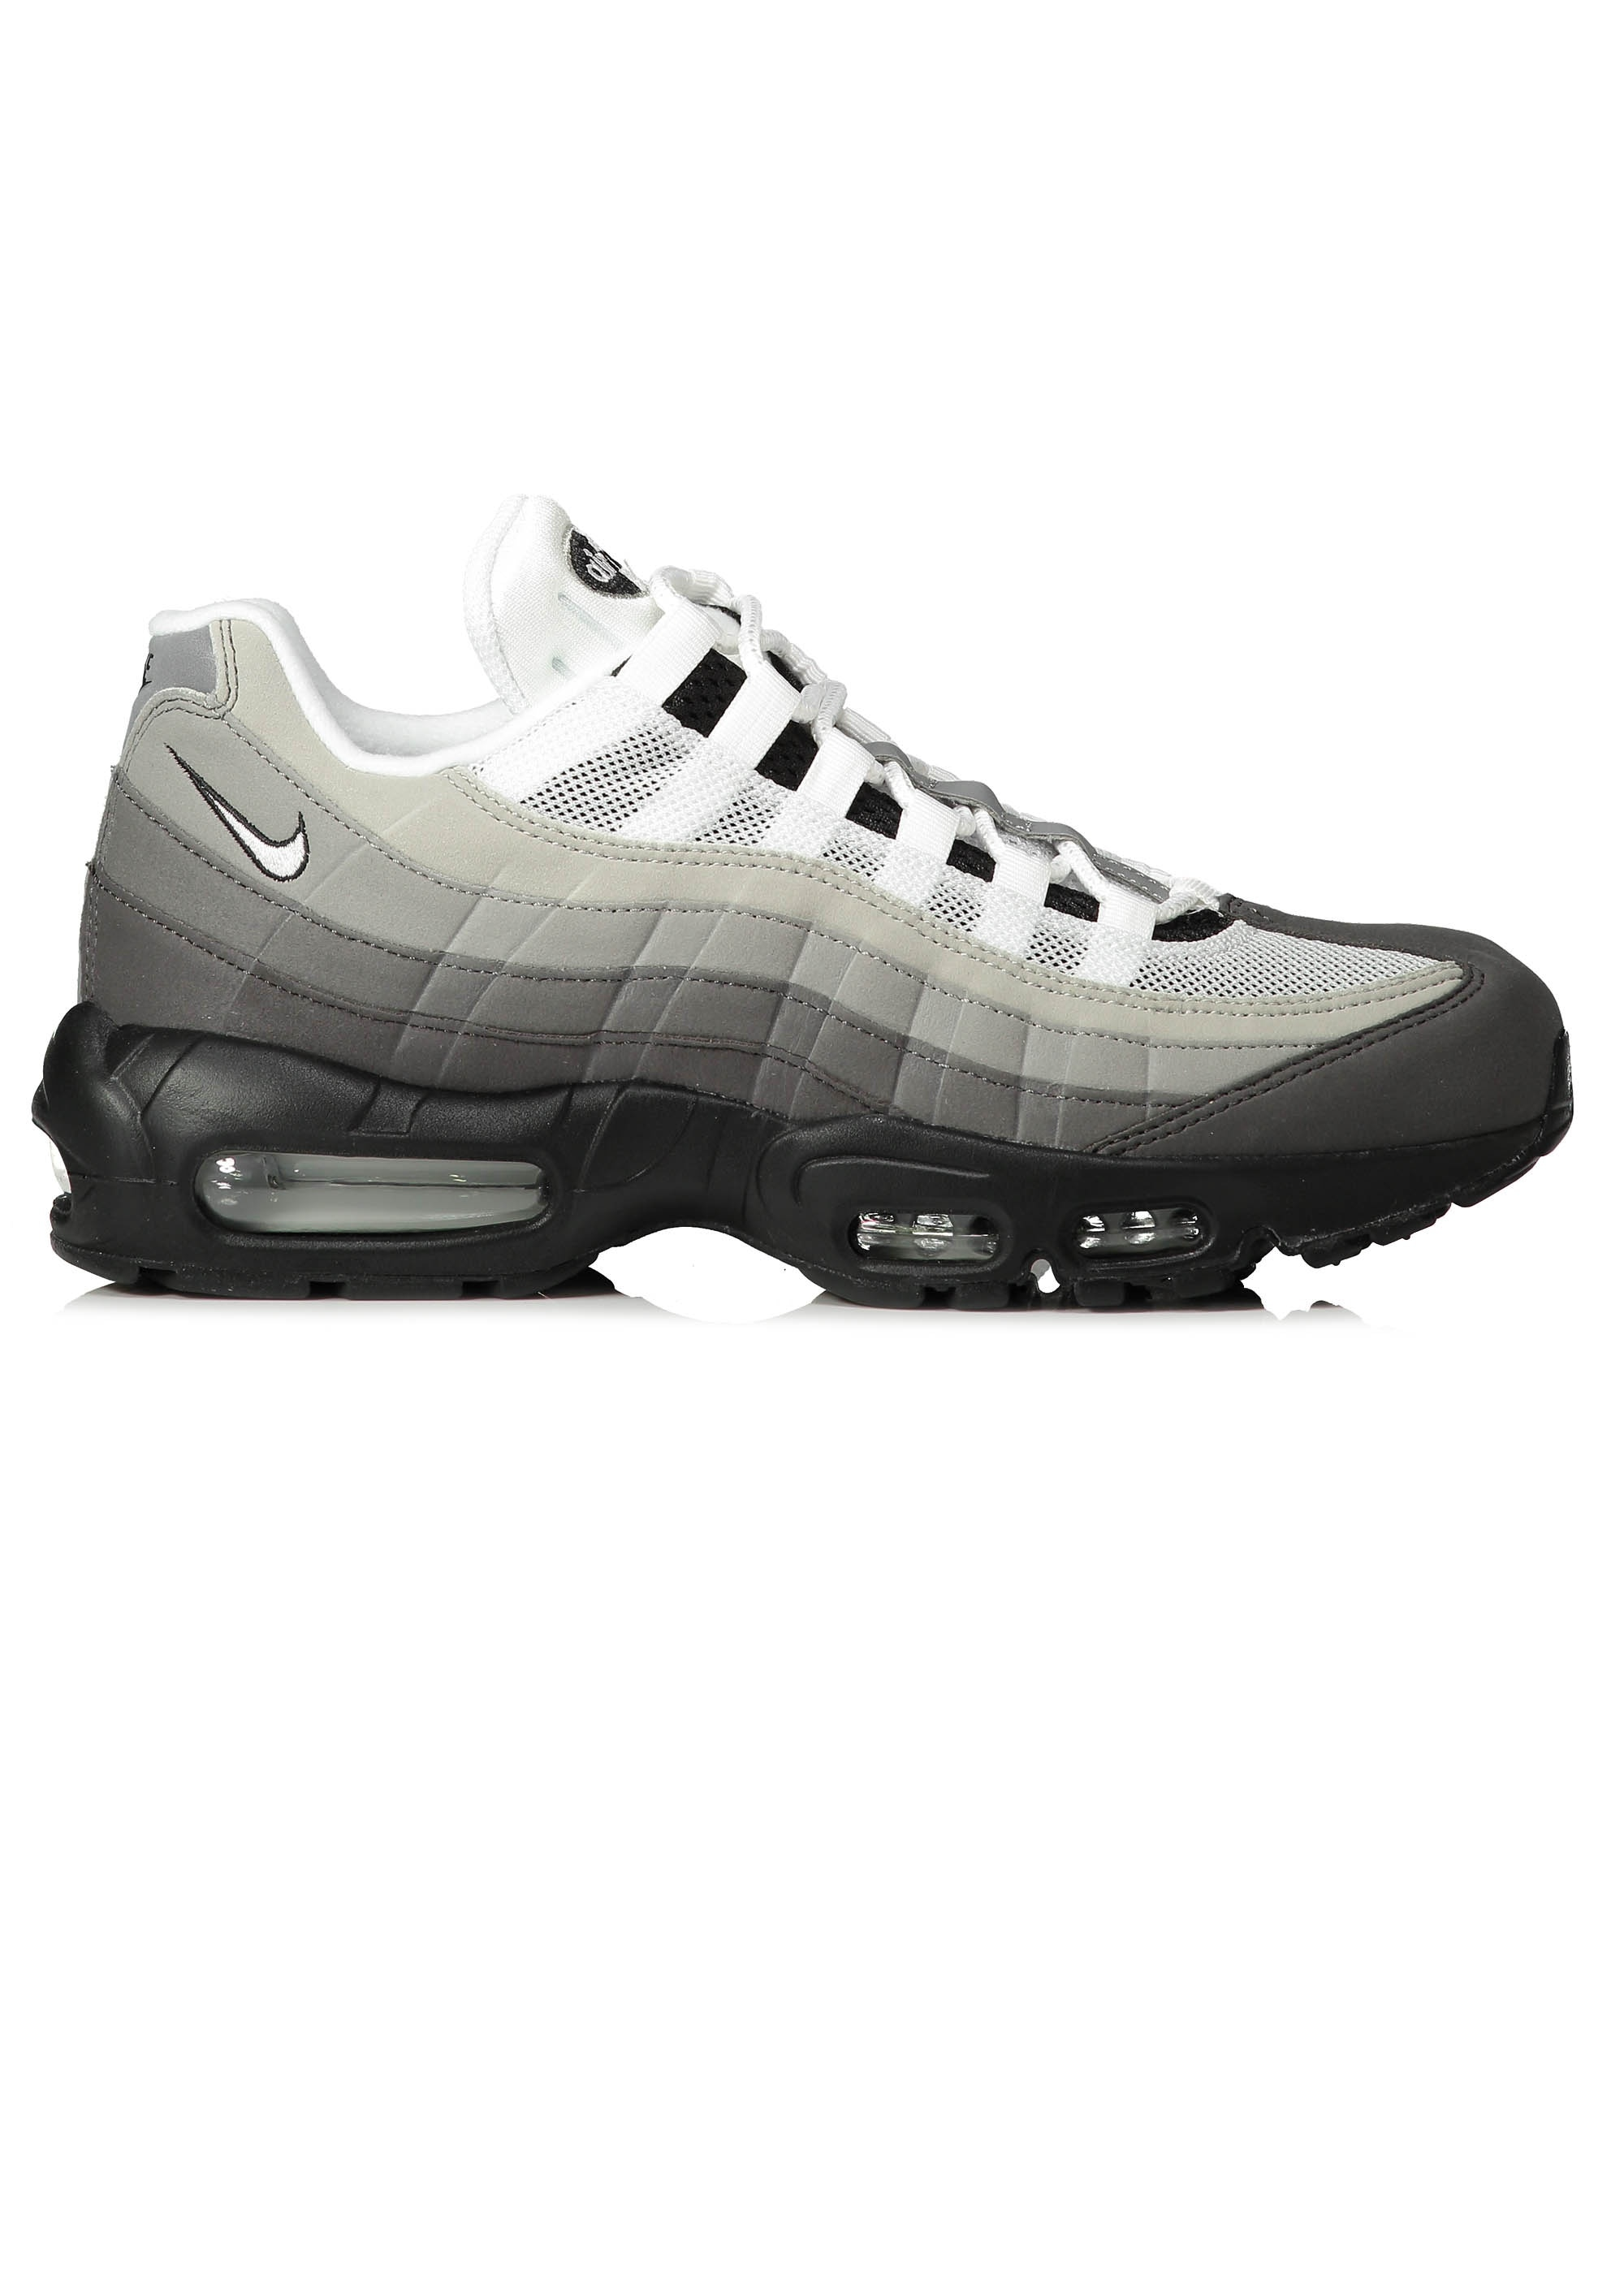 Nike Footwear Air Max 95 OG , Black / White